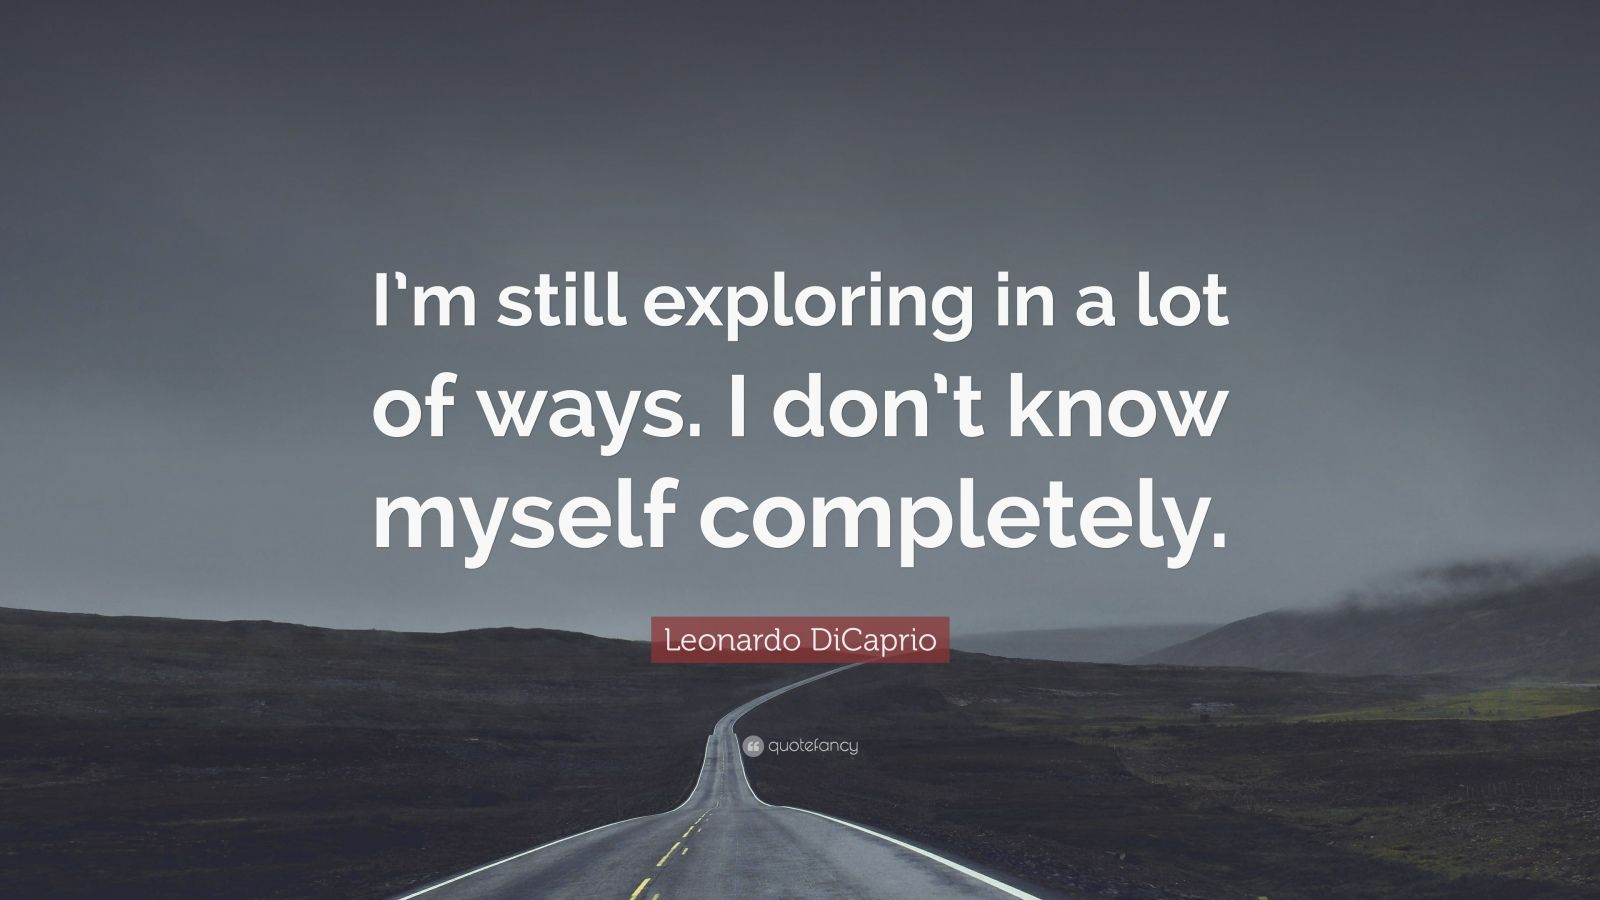 """Leonardo DiCaprio Quote: """"I'm still exploring in a lot of ways. I don't know myself completely."""""""